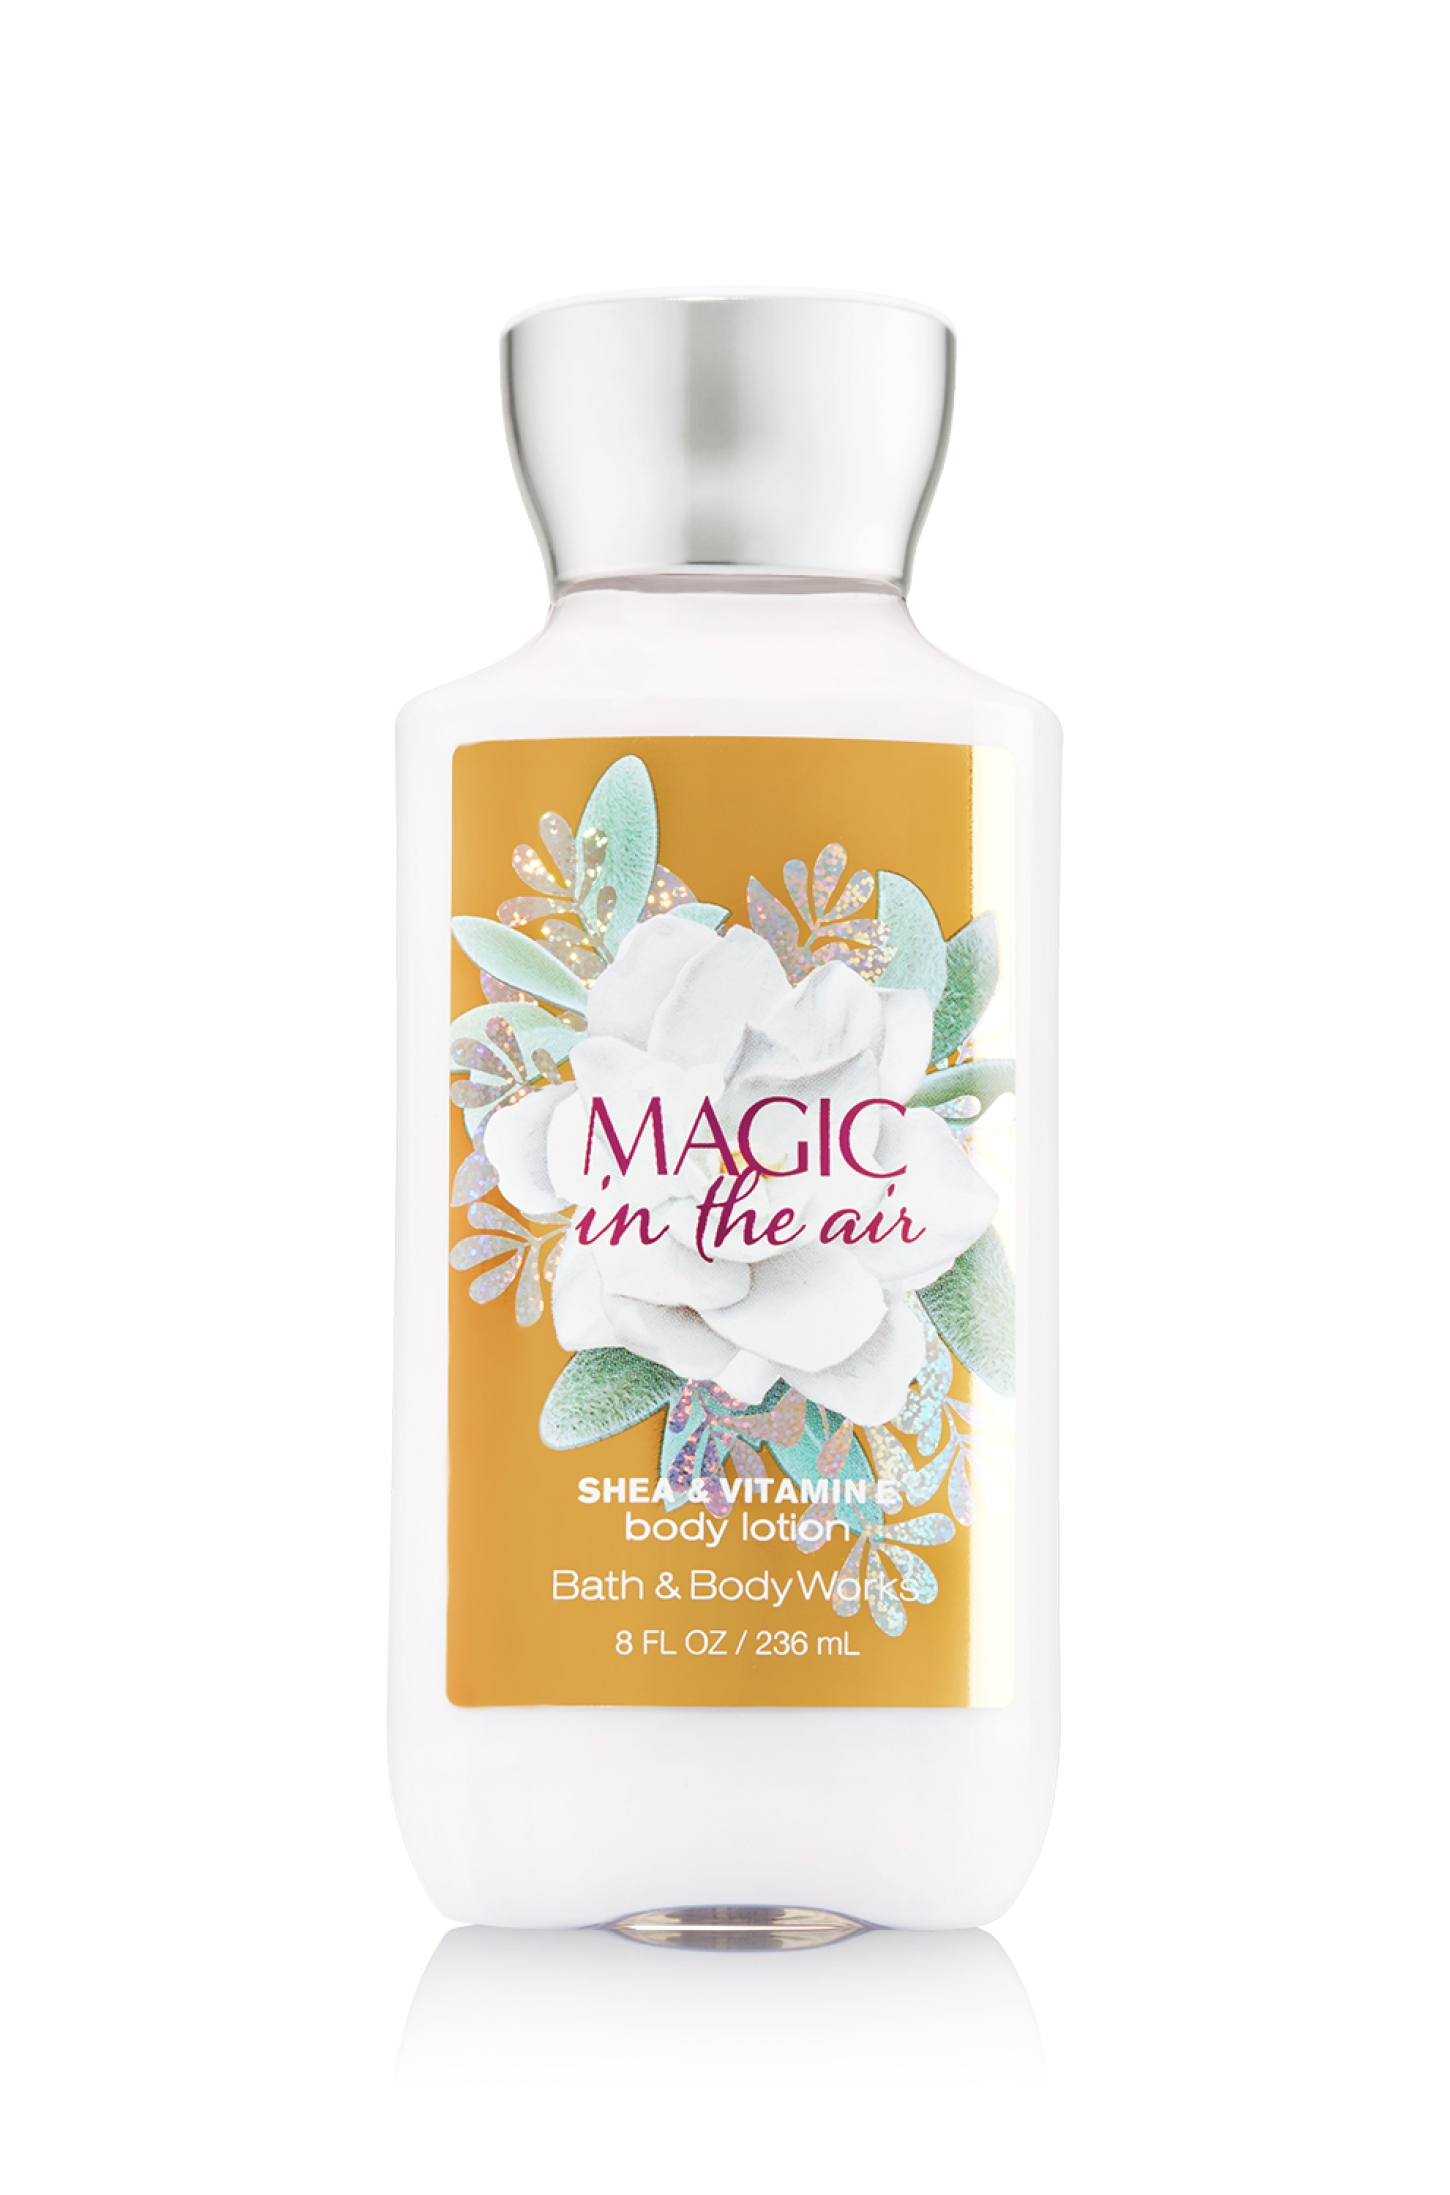 Bath & Body Works Magic in the Air Lotion